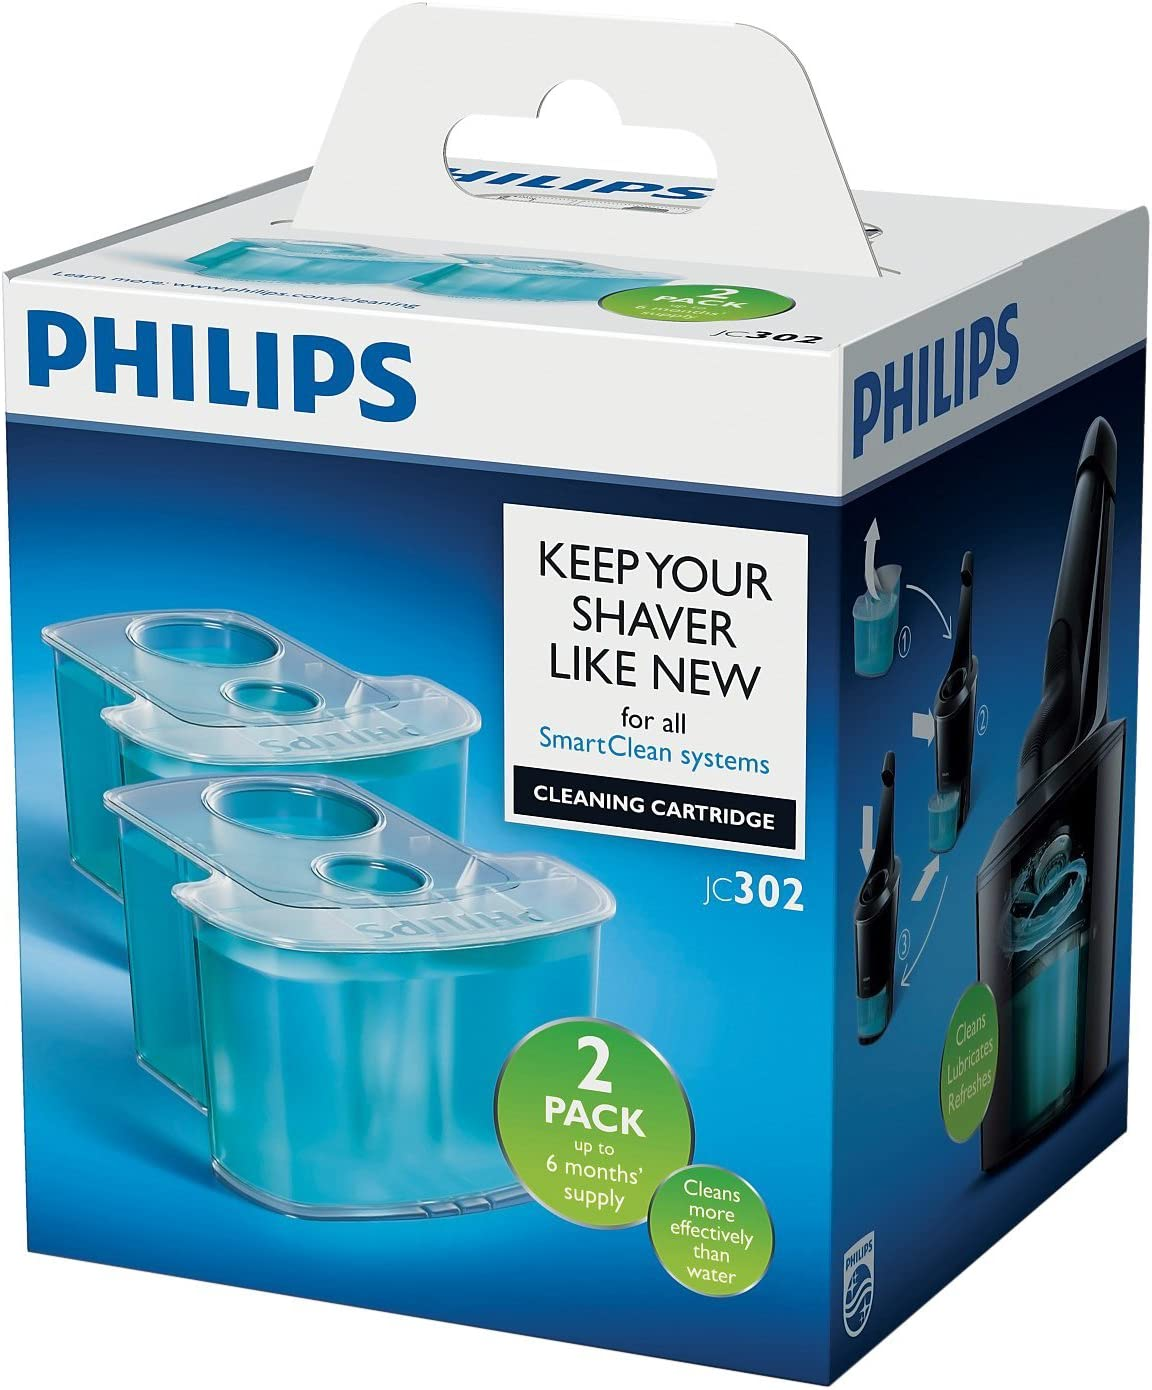 Philips SmartClean Cleaning Cartridge 2-pack [JC302/50]